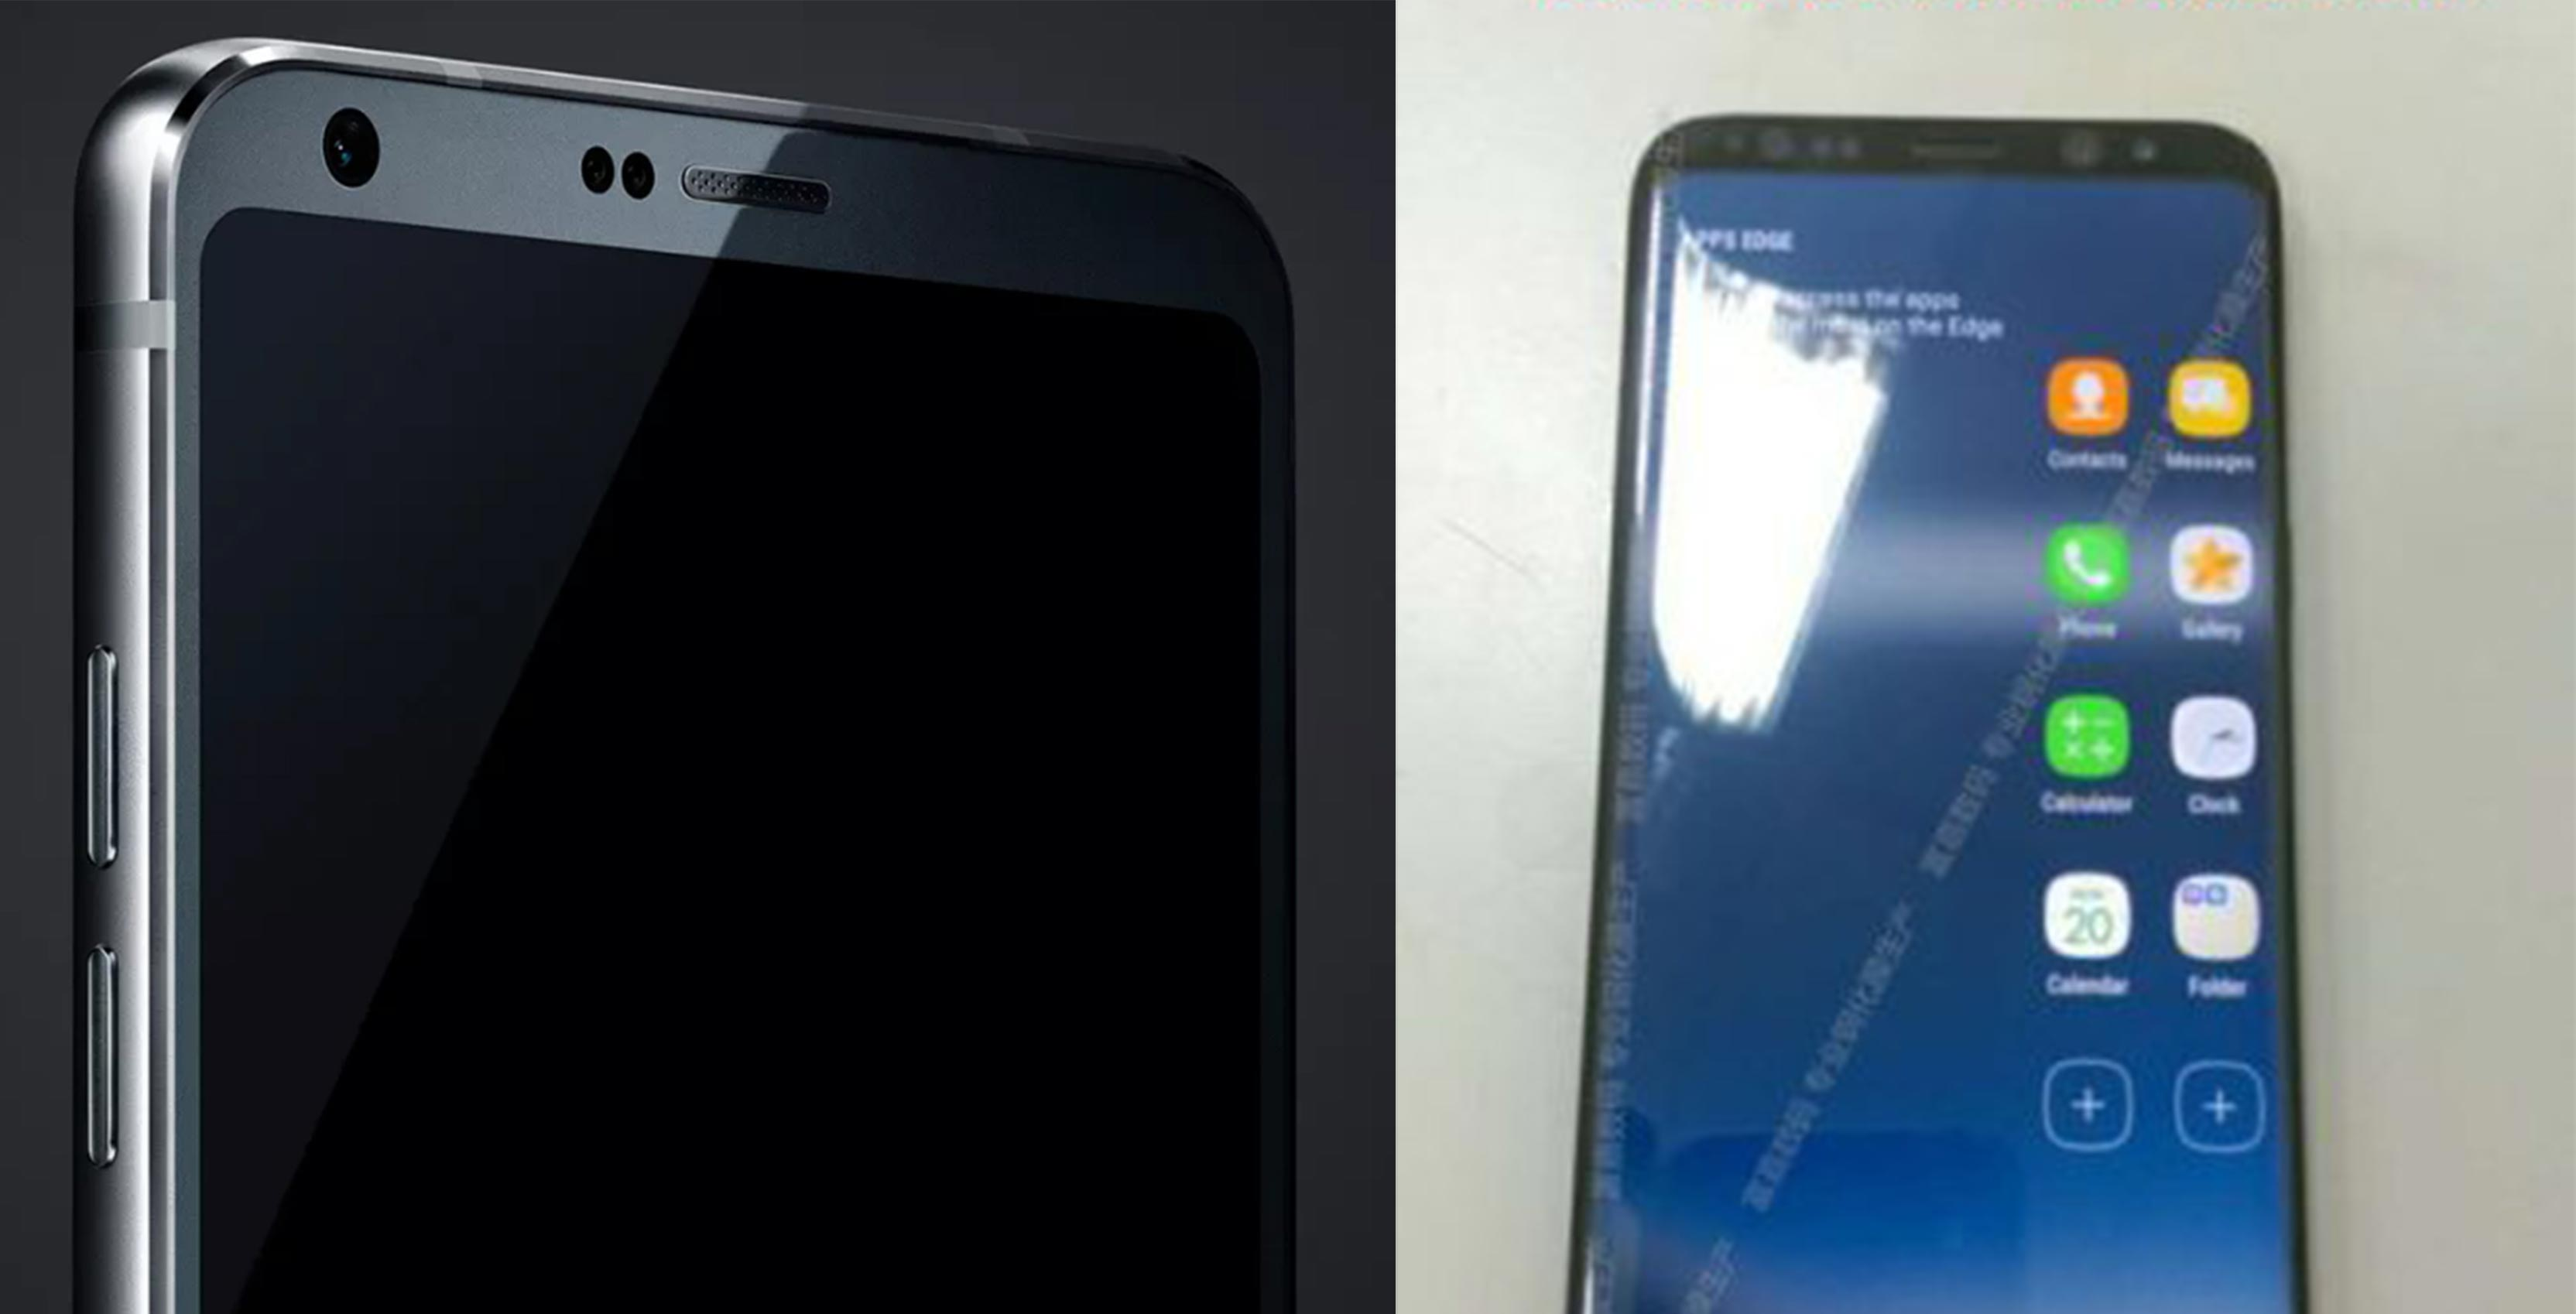 Leaked photo of the Galaxy S8 and G6